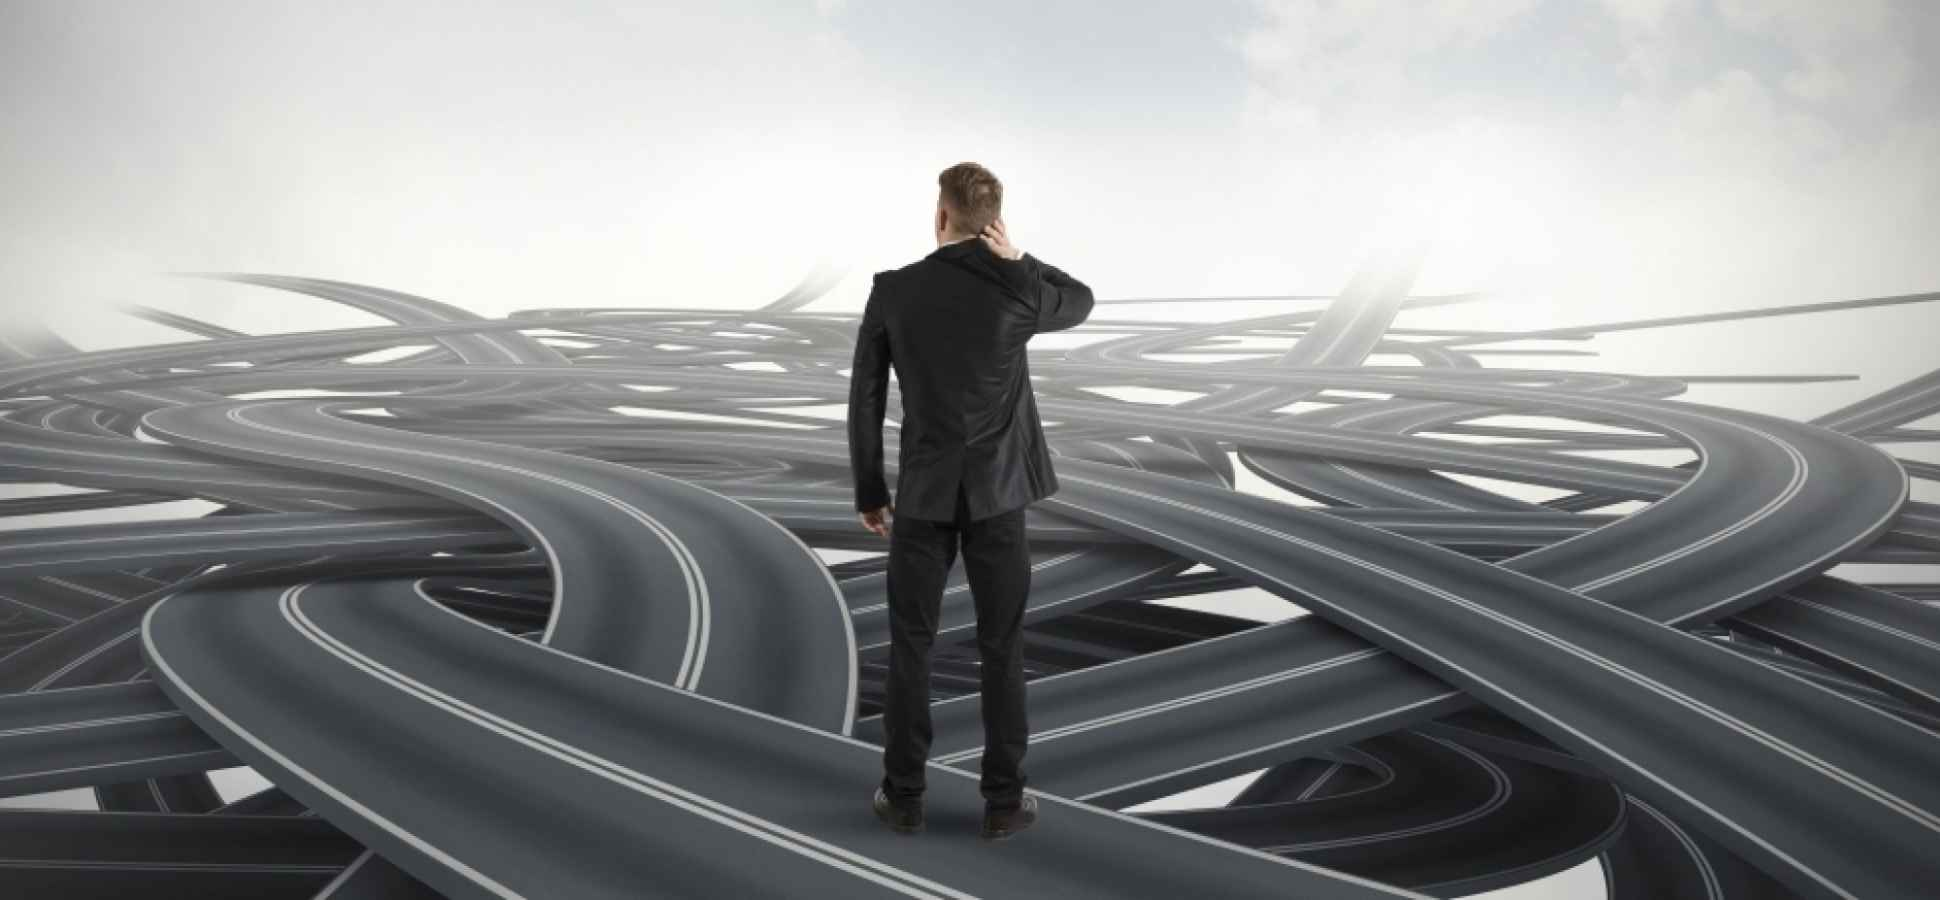 3 Things to Remember for Conquering Career Uncertainty